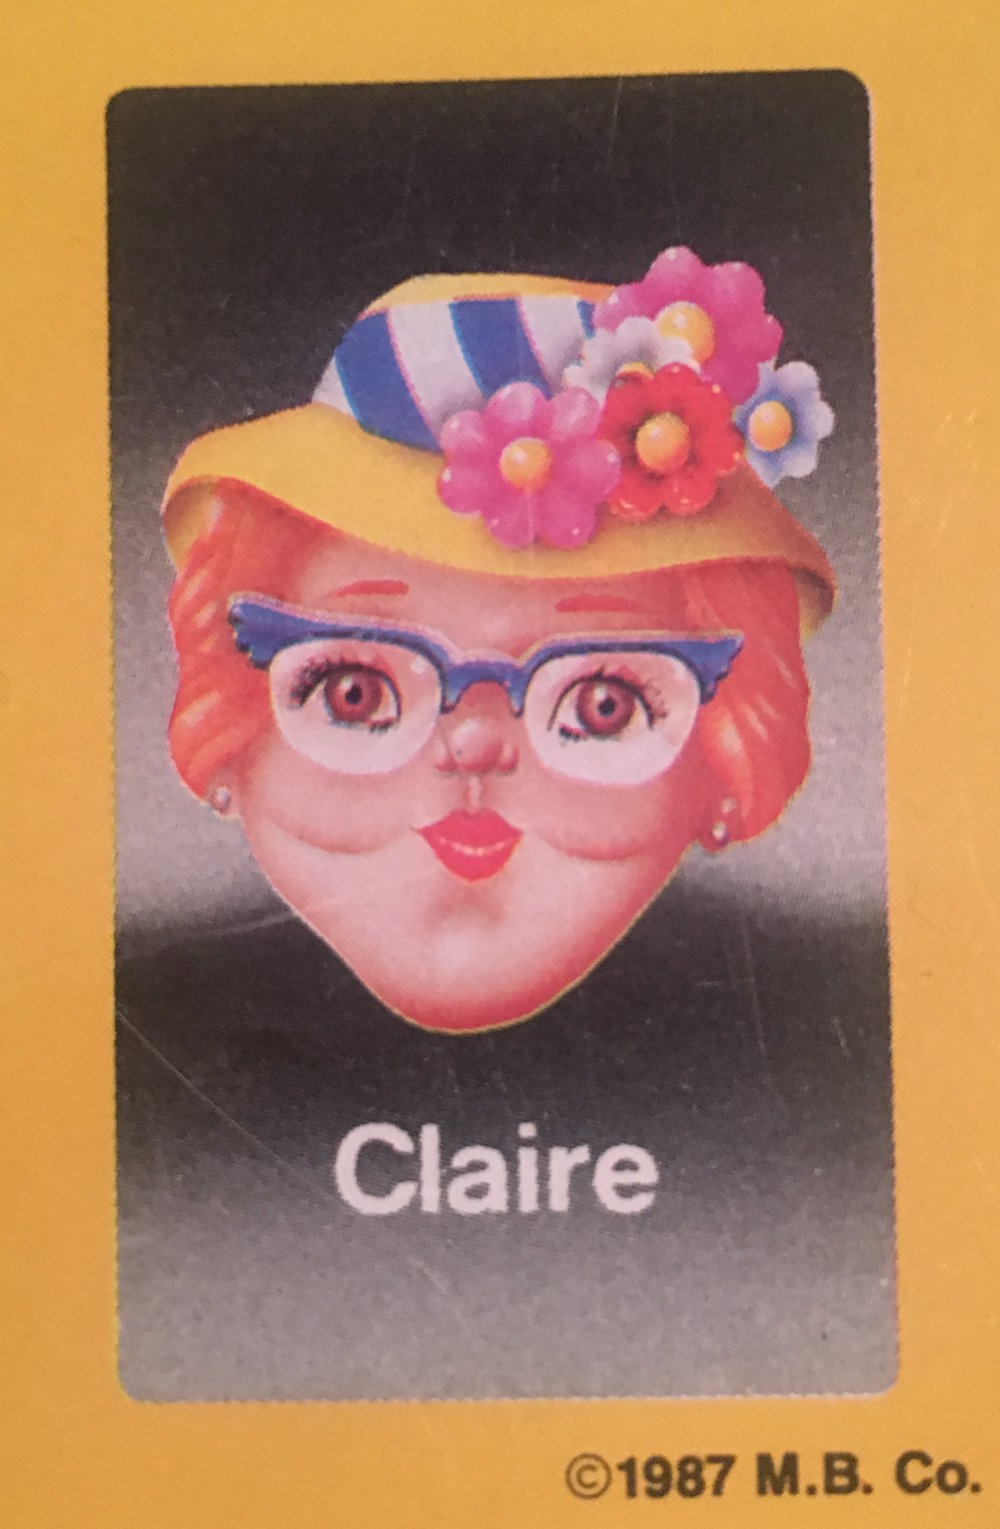 - Claire always stayed humble despite the attention lavished upon her and the other Guess Who?® faces. After the early years in the Guess Who?® spotlight, she went into business selling her distinctive yellow flowered hats. They were more popular than even she could have predicted, and after investing her money wisely, she is officially the wealthiest Guess Who?® personality. Rumor has it she subsequently built a room full of gold, where she spends most of her days lounging in the soft metallic stacks.